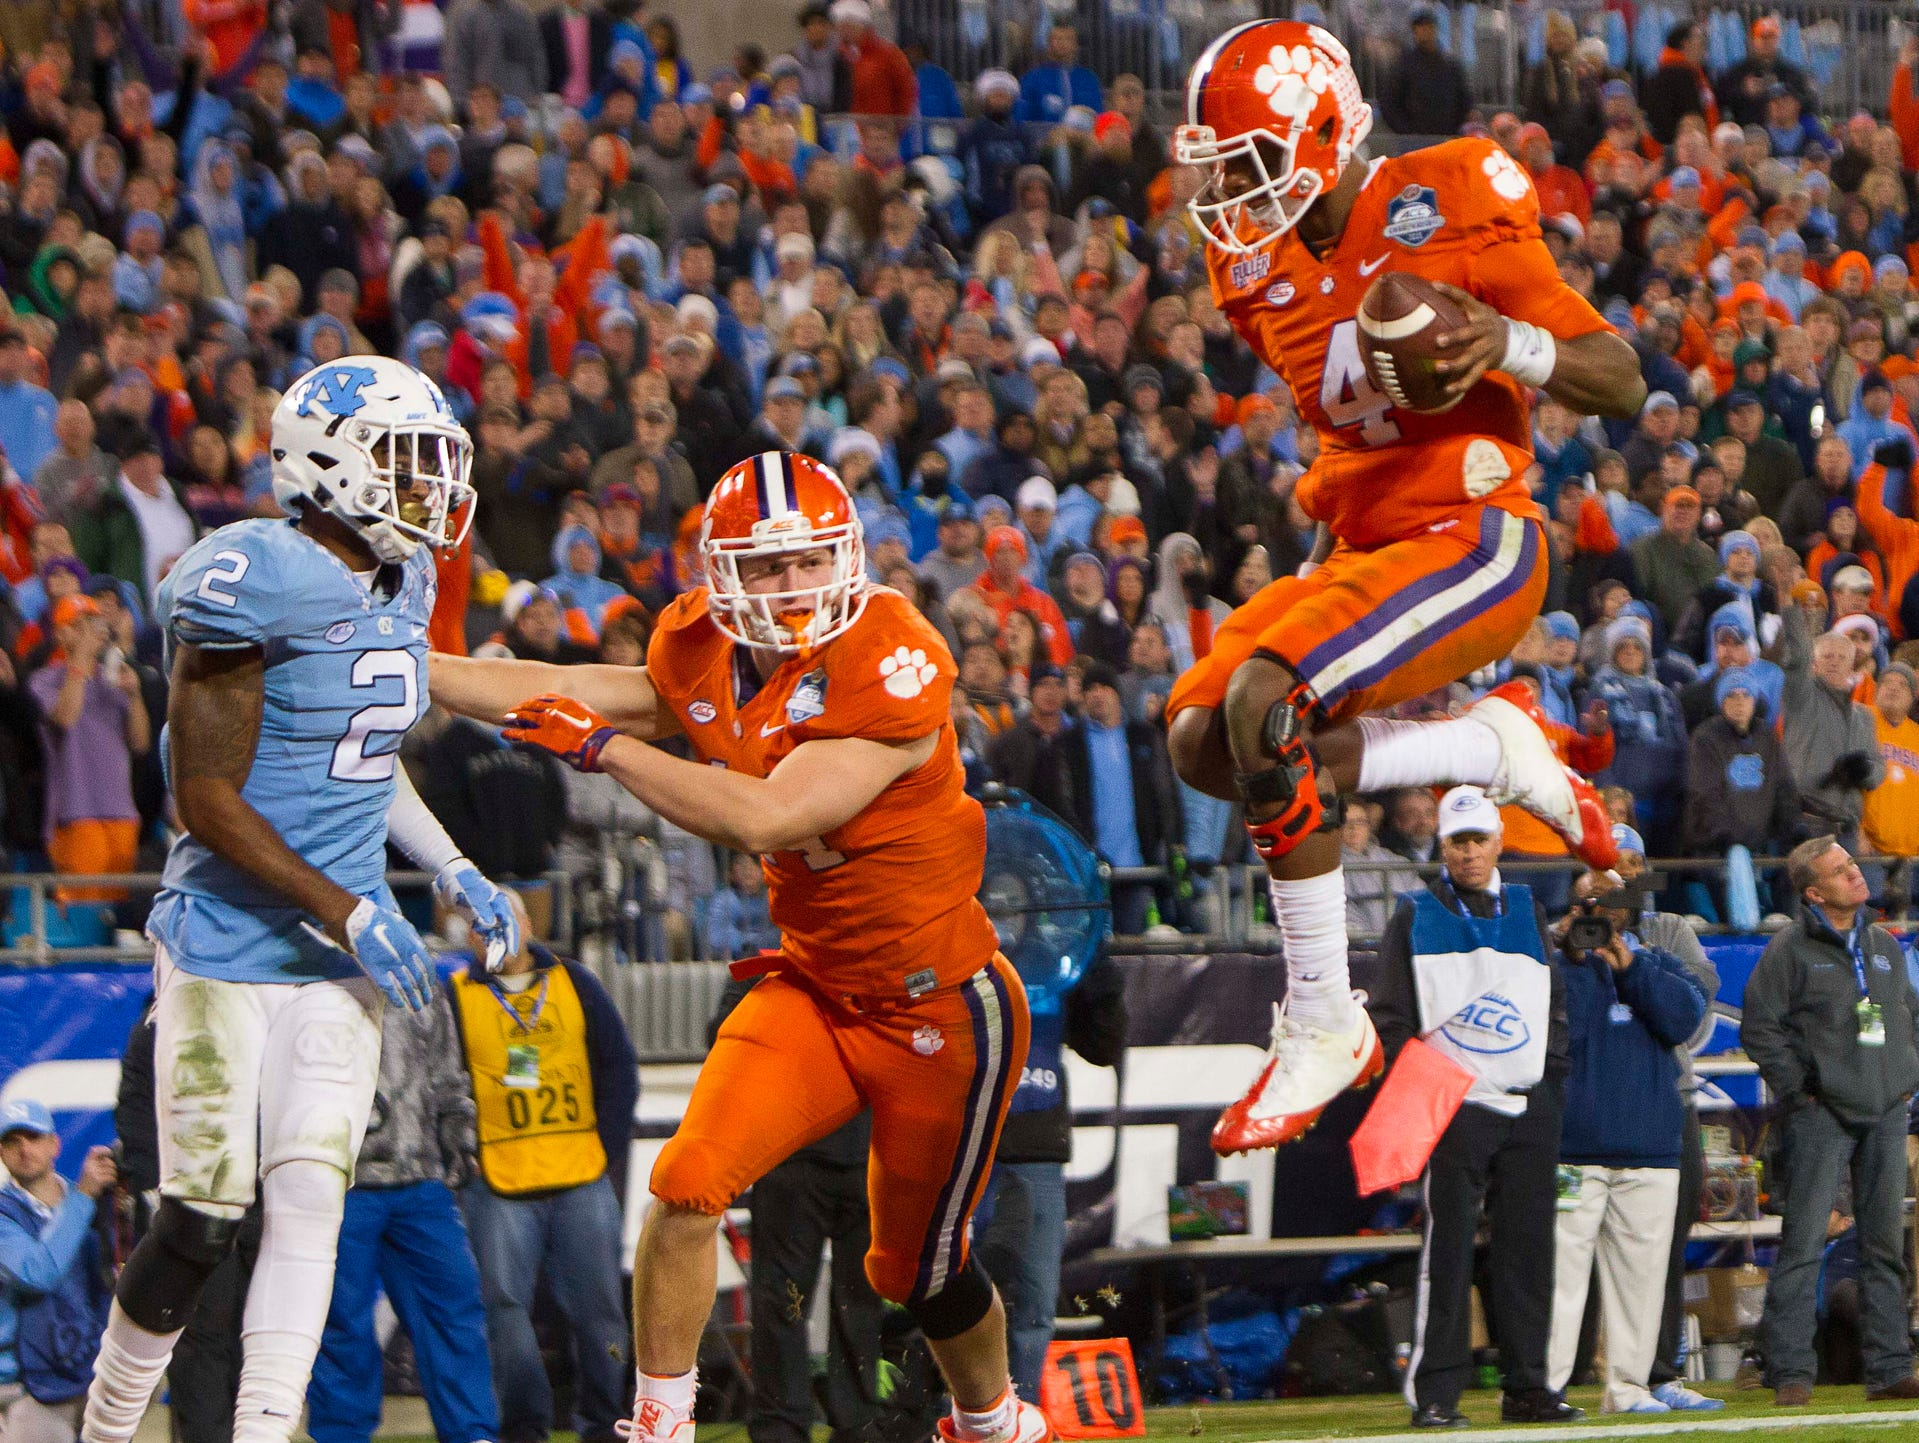 Clemson quarterback Deshaun Watson scores a touchdown Jim Kelly/ USA Today